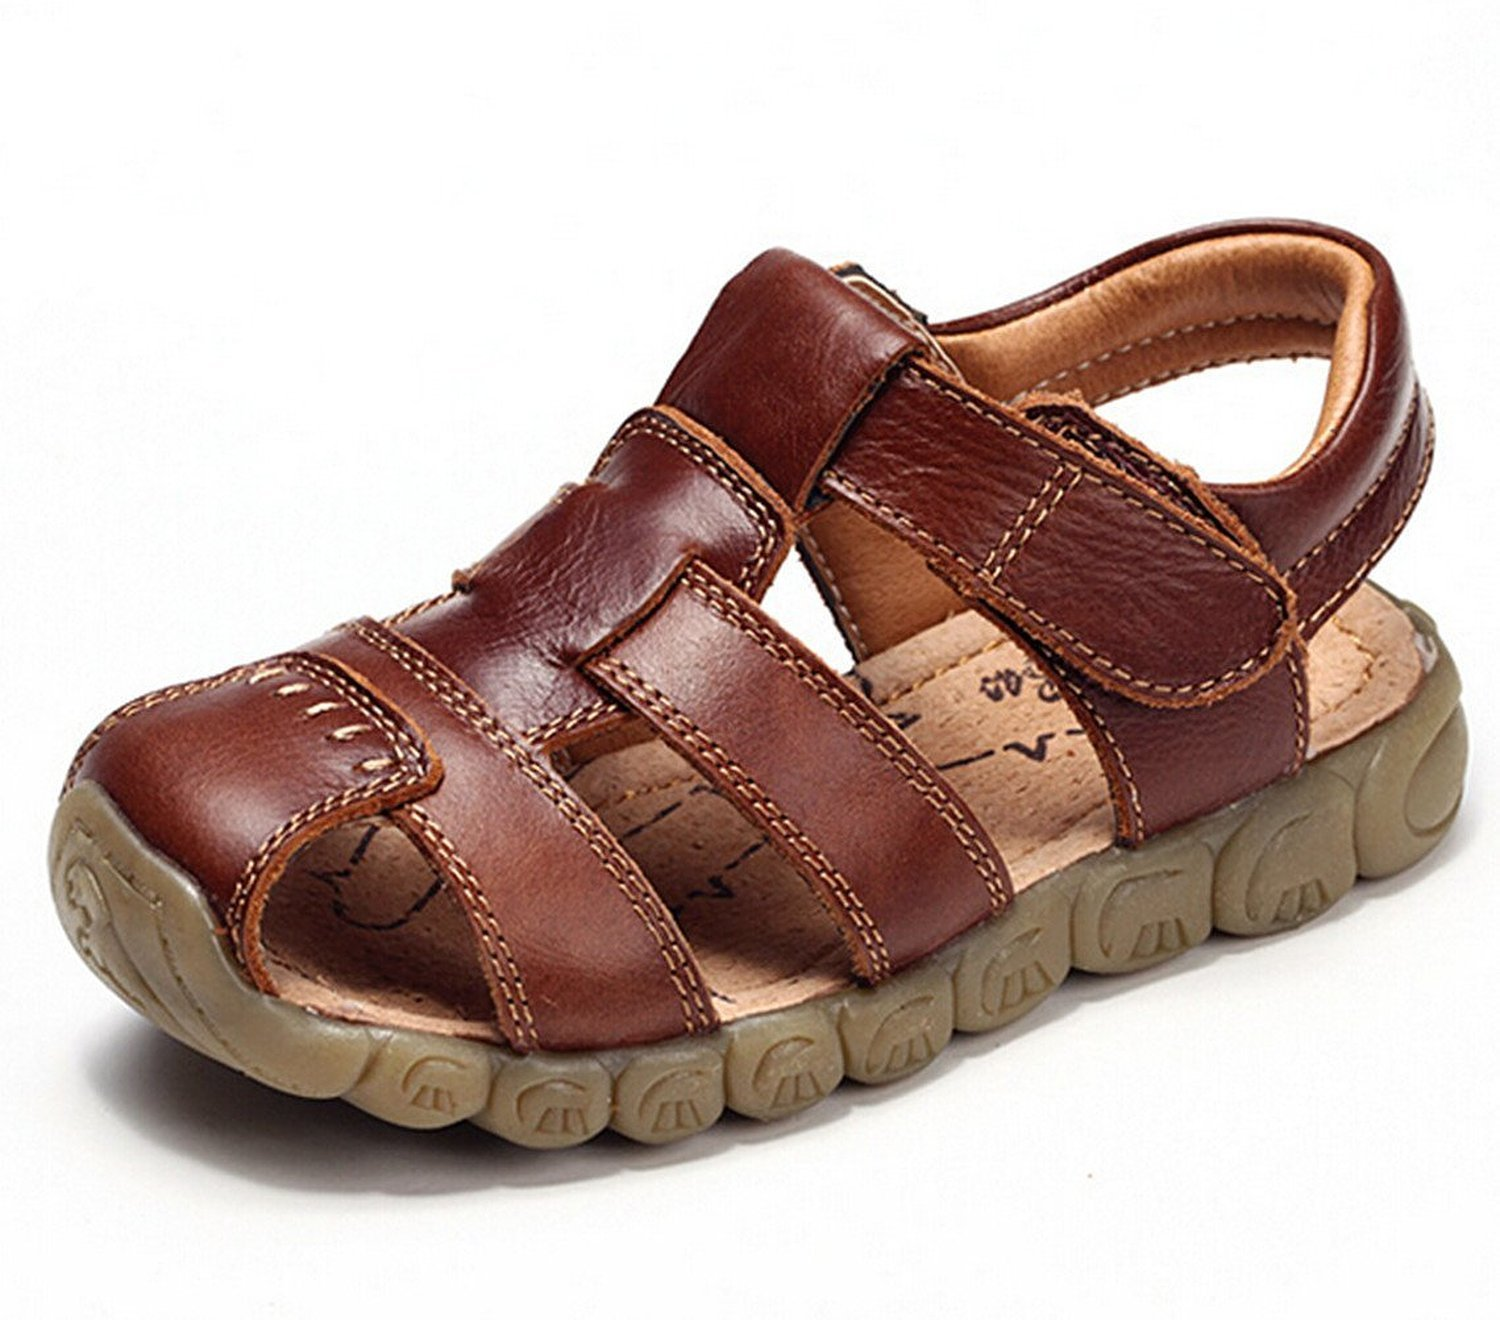 Zicoope Summer Outdoor Athletic Flat Sandals for Boys (Toddler/Little Kid) Brown 10 M